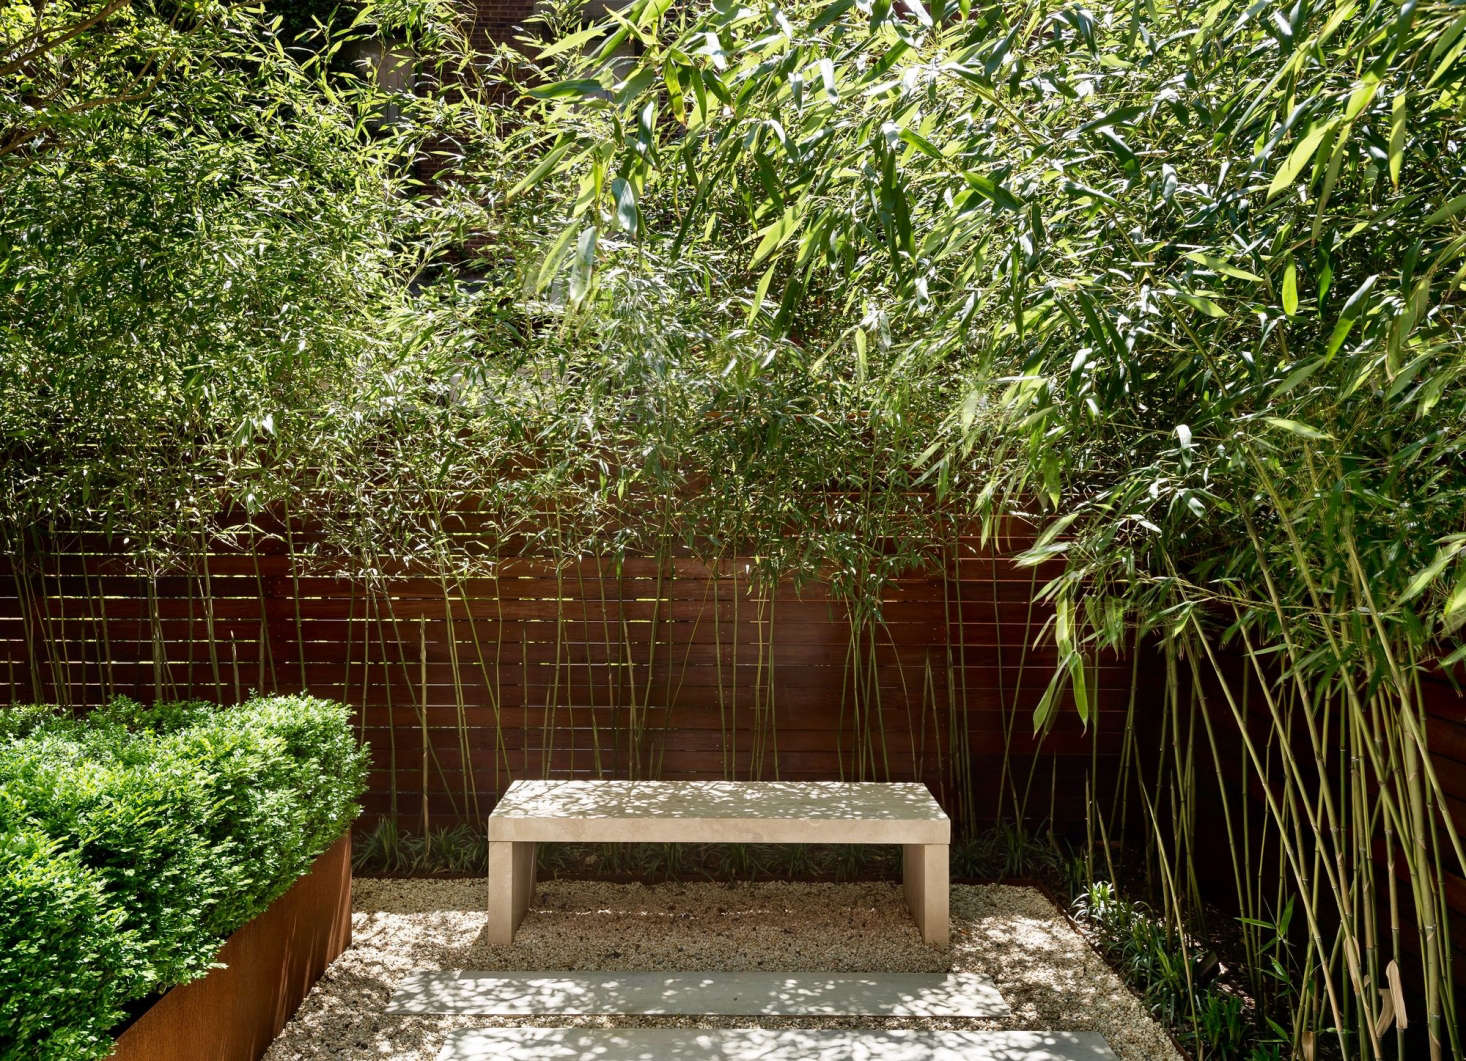 """To lighten the look, strip the lower leaves from bamboo planted against a fence or wall. Photograph by Matthew Williams. See more of this garden in Before & After: From """"Fishbowl"""" to Private Oasis."""